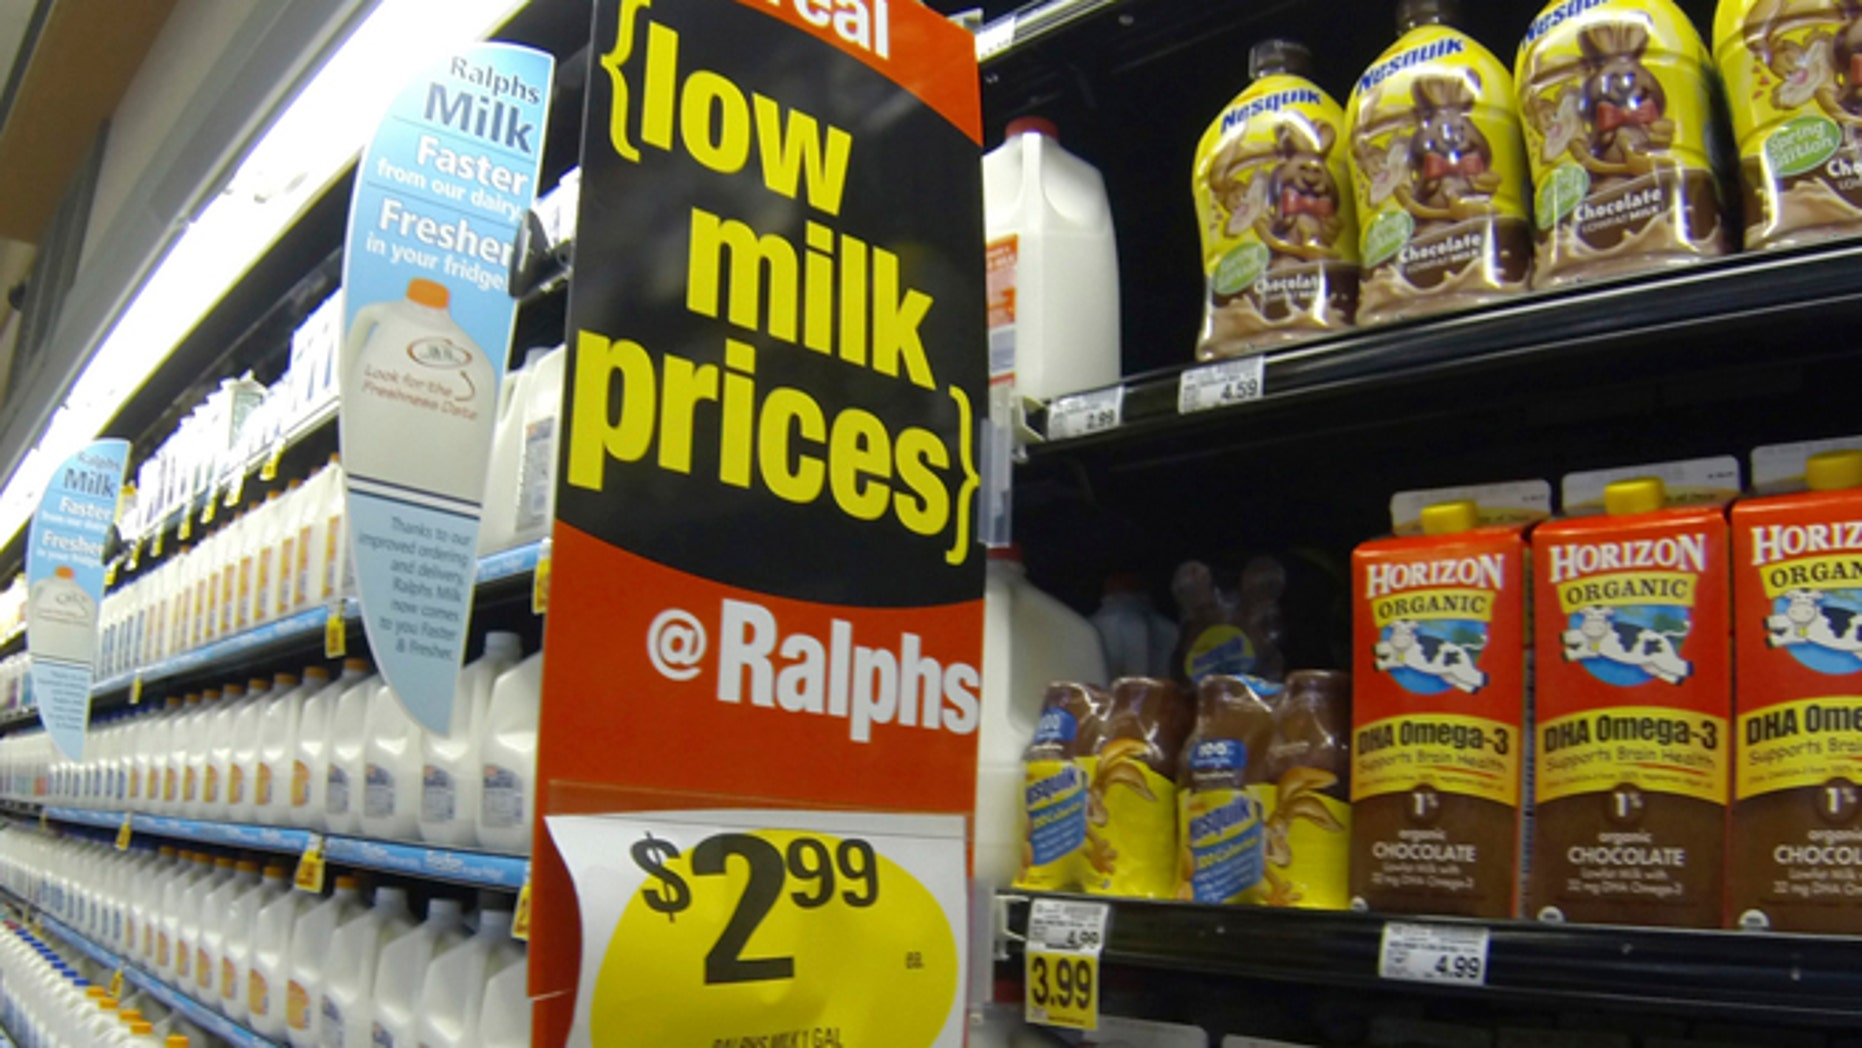 FILE: March 6, 2013: Milk for sale at a Ralphs grocery store in Del Mar, Calif.